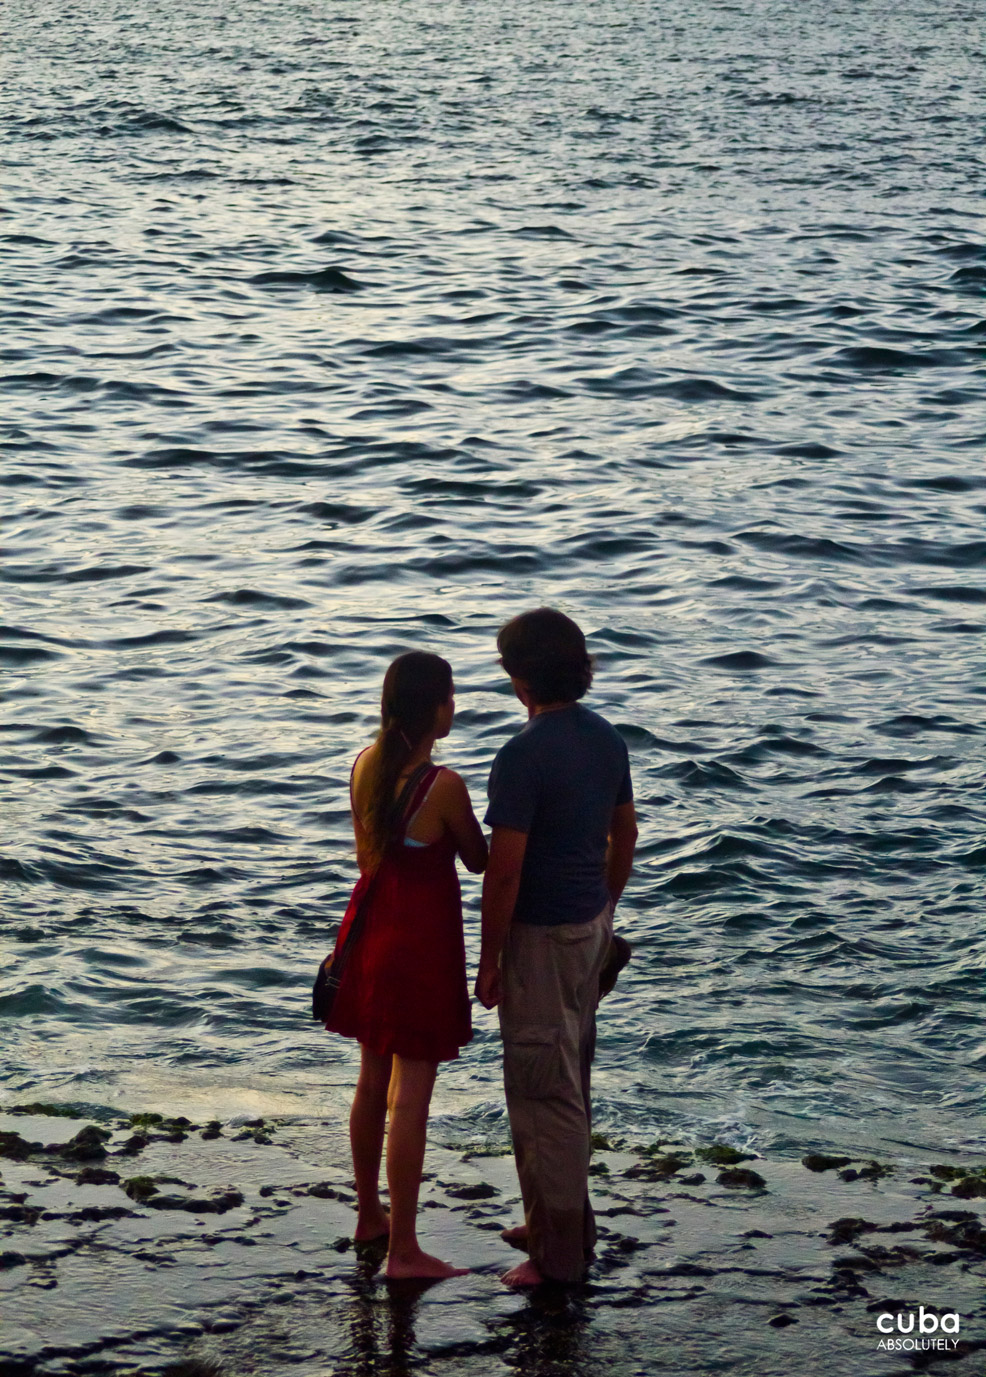 The sea is always a nice setting to celebrate love. Havana, Cuba